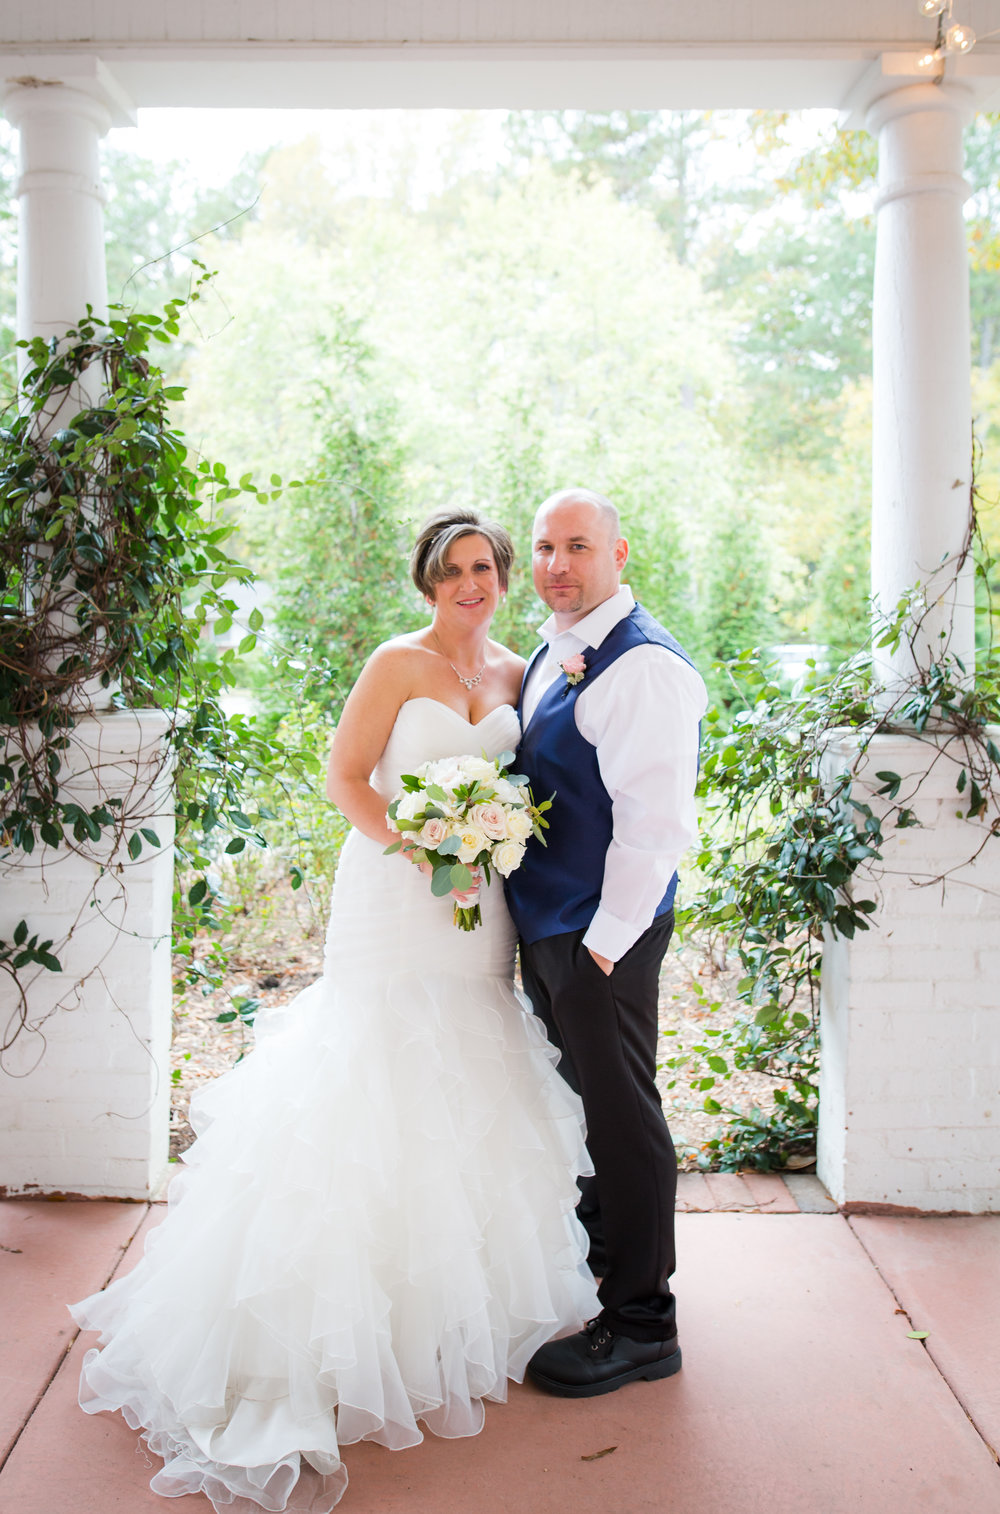 Nine19 Photography Mad Dash Weddings Raleigh NC Wedding Photographer-7970.jpg